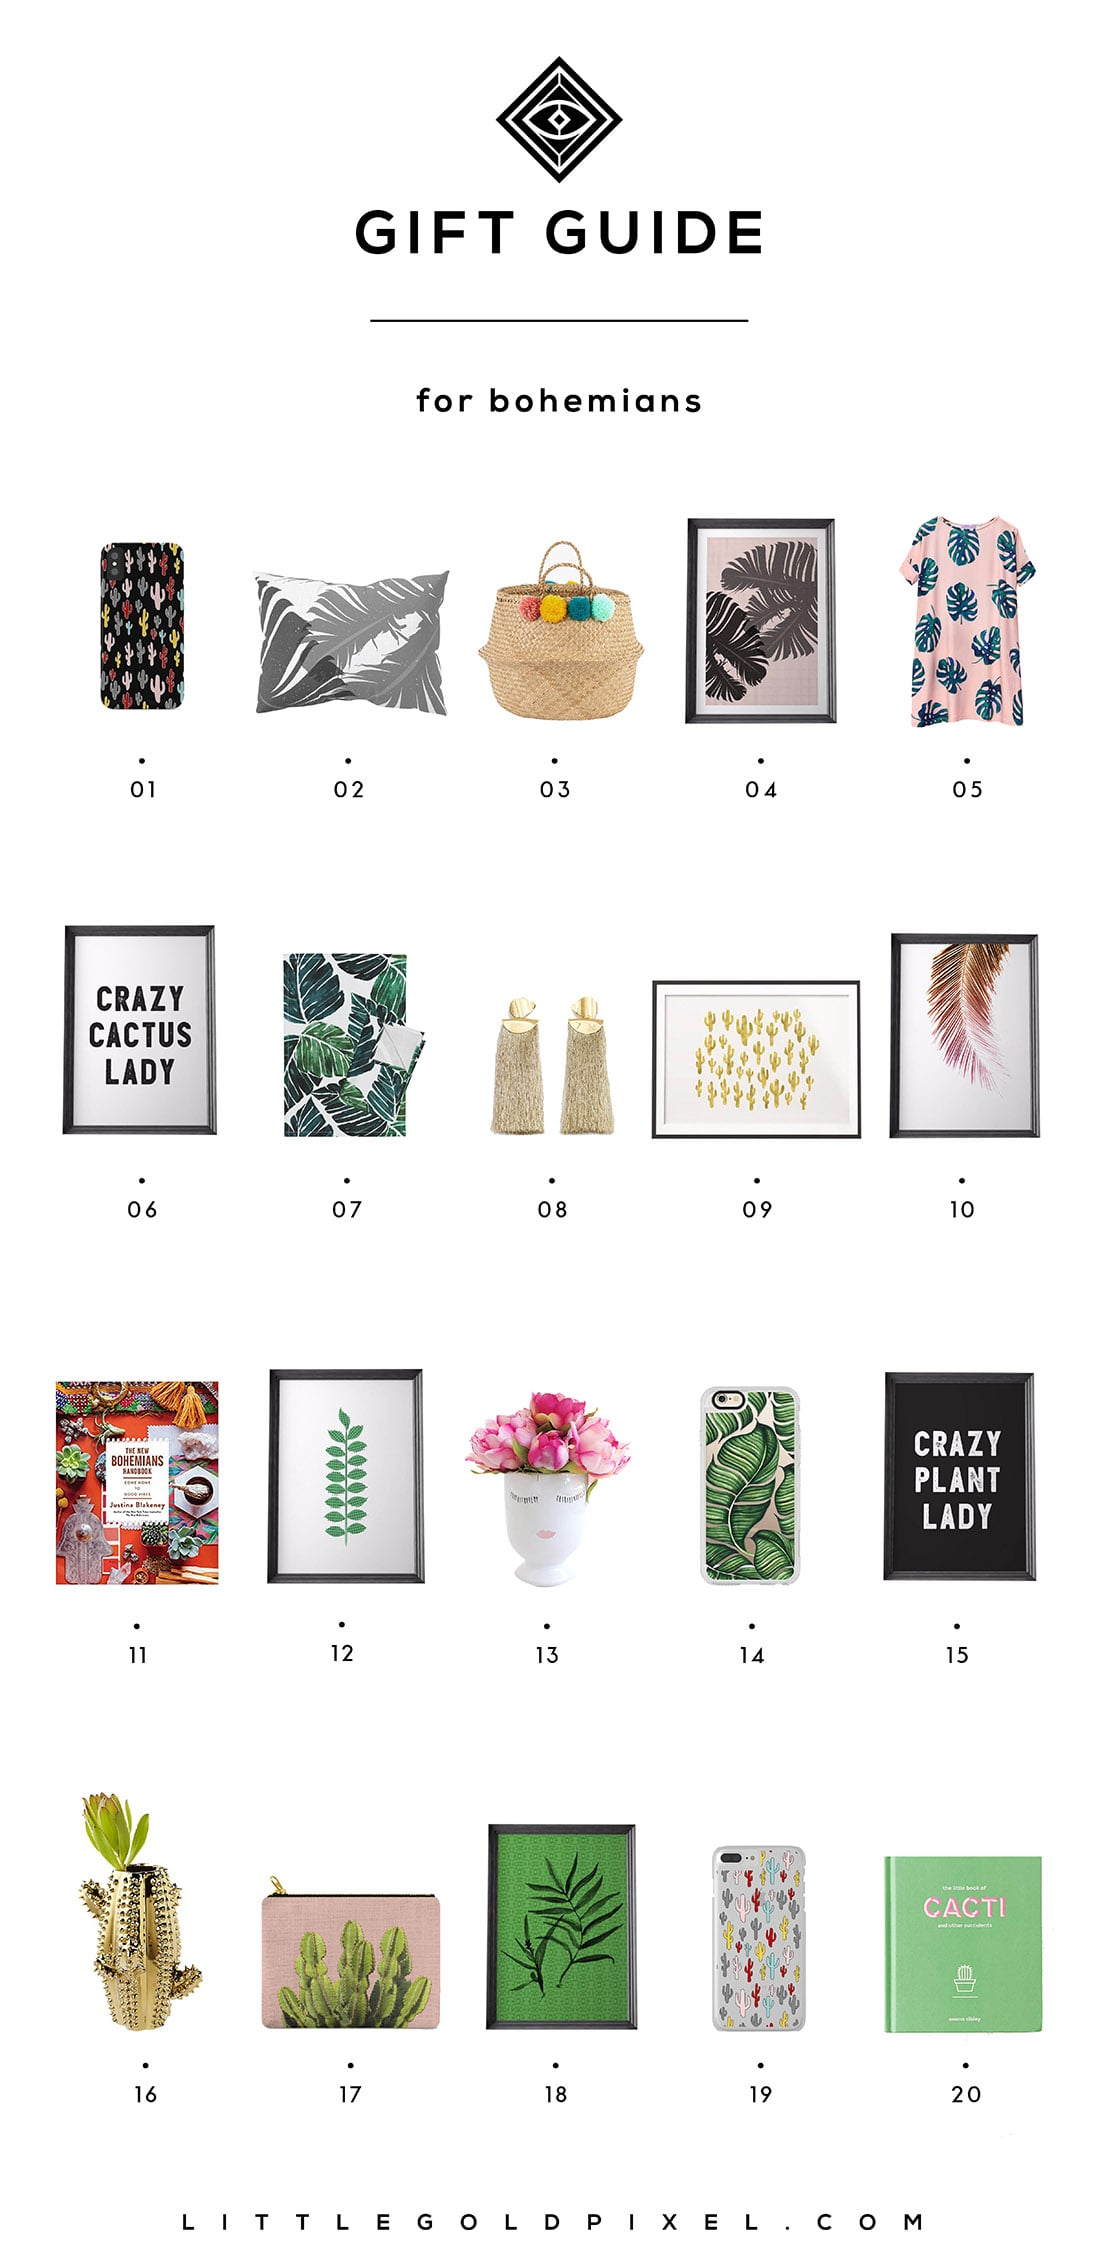 Little Gold Pixel's Bohemian Gift Guide: Here are 20 gifts perfect for the plant-loving free spirits in your life. Grab one for yourself while you're at it!